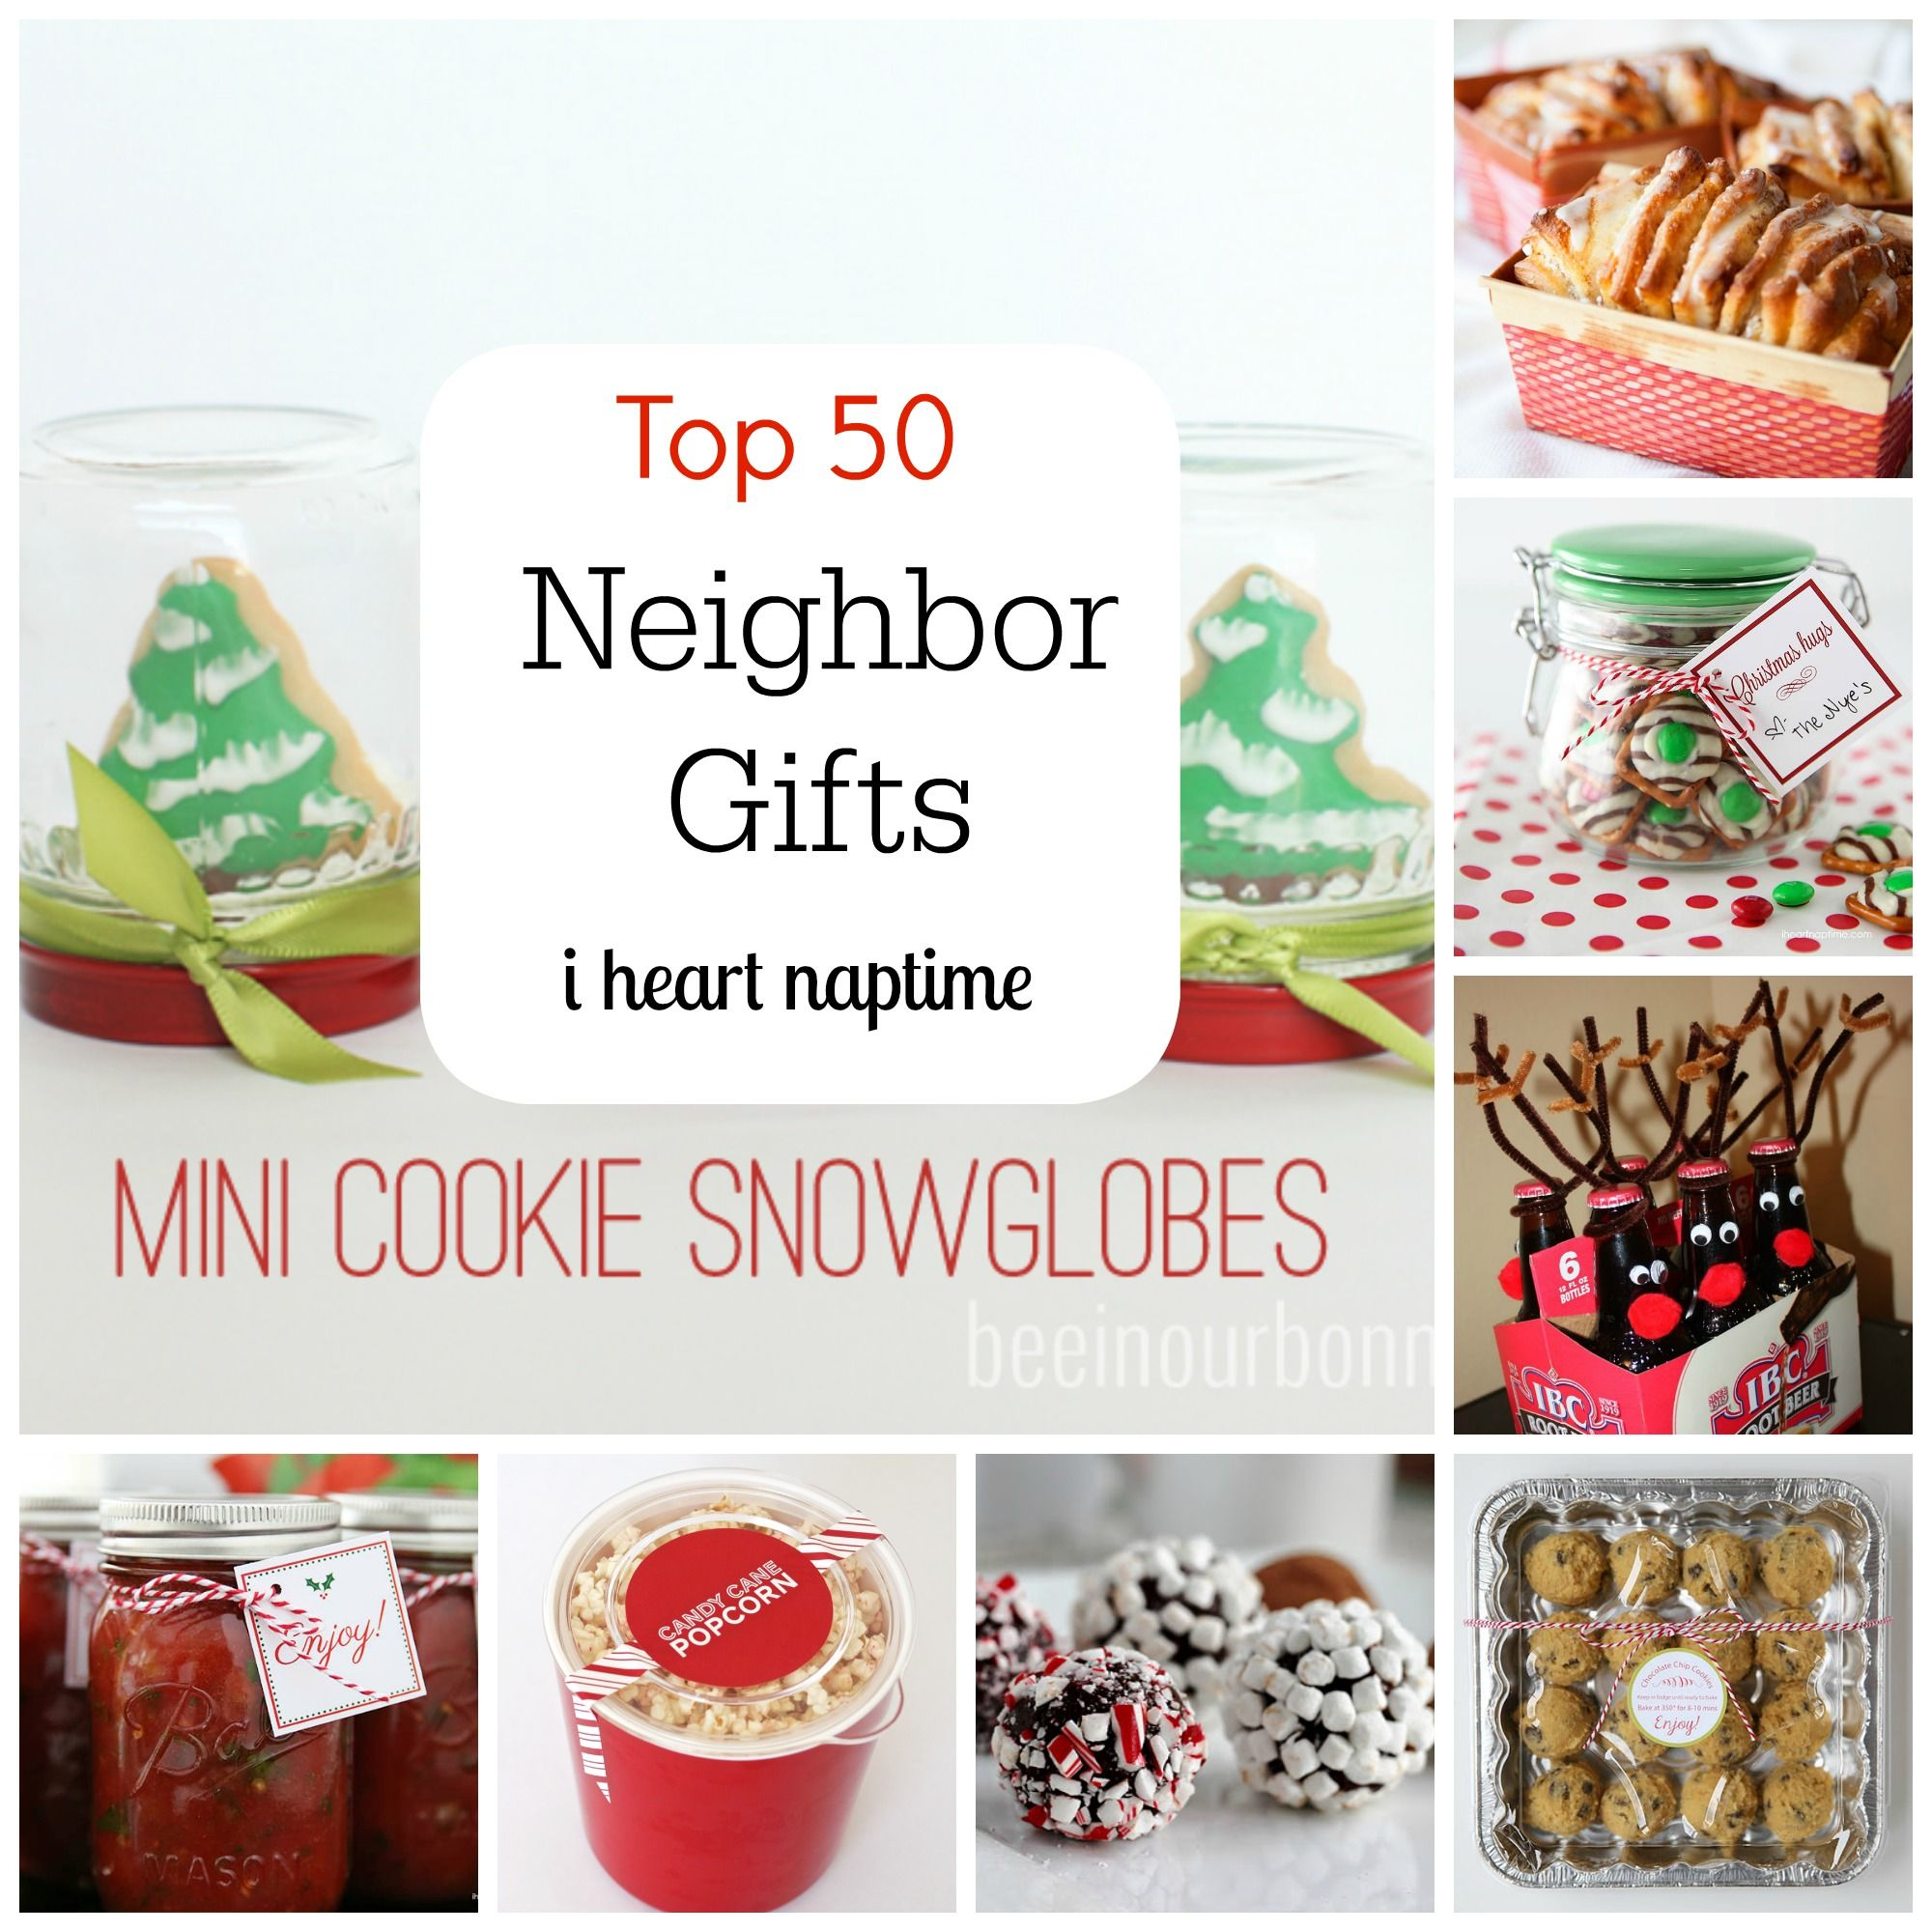 Top 50 Neighbor Gift Ideas | Neighbor gifts, Christmas ...